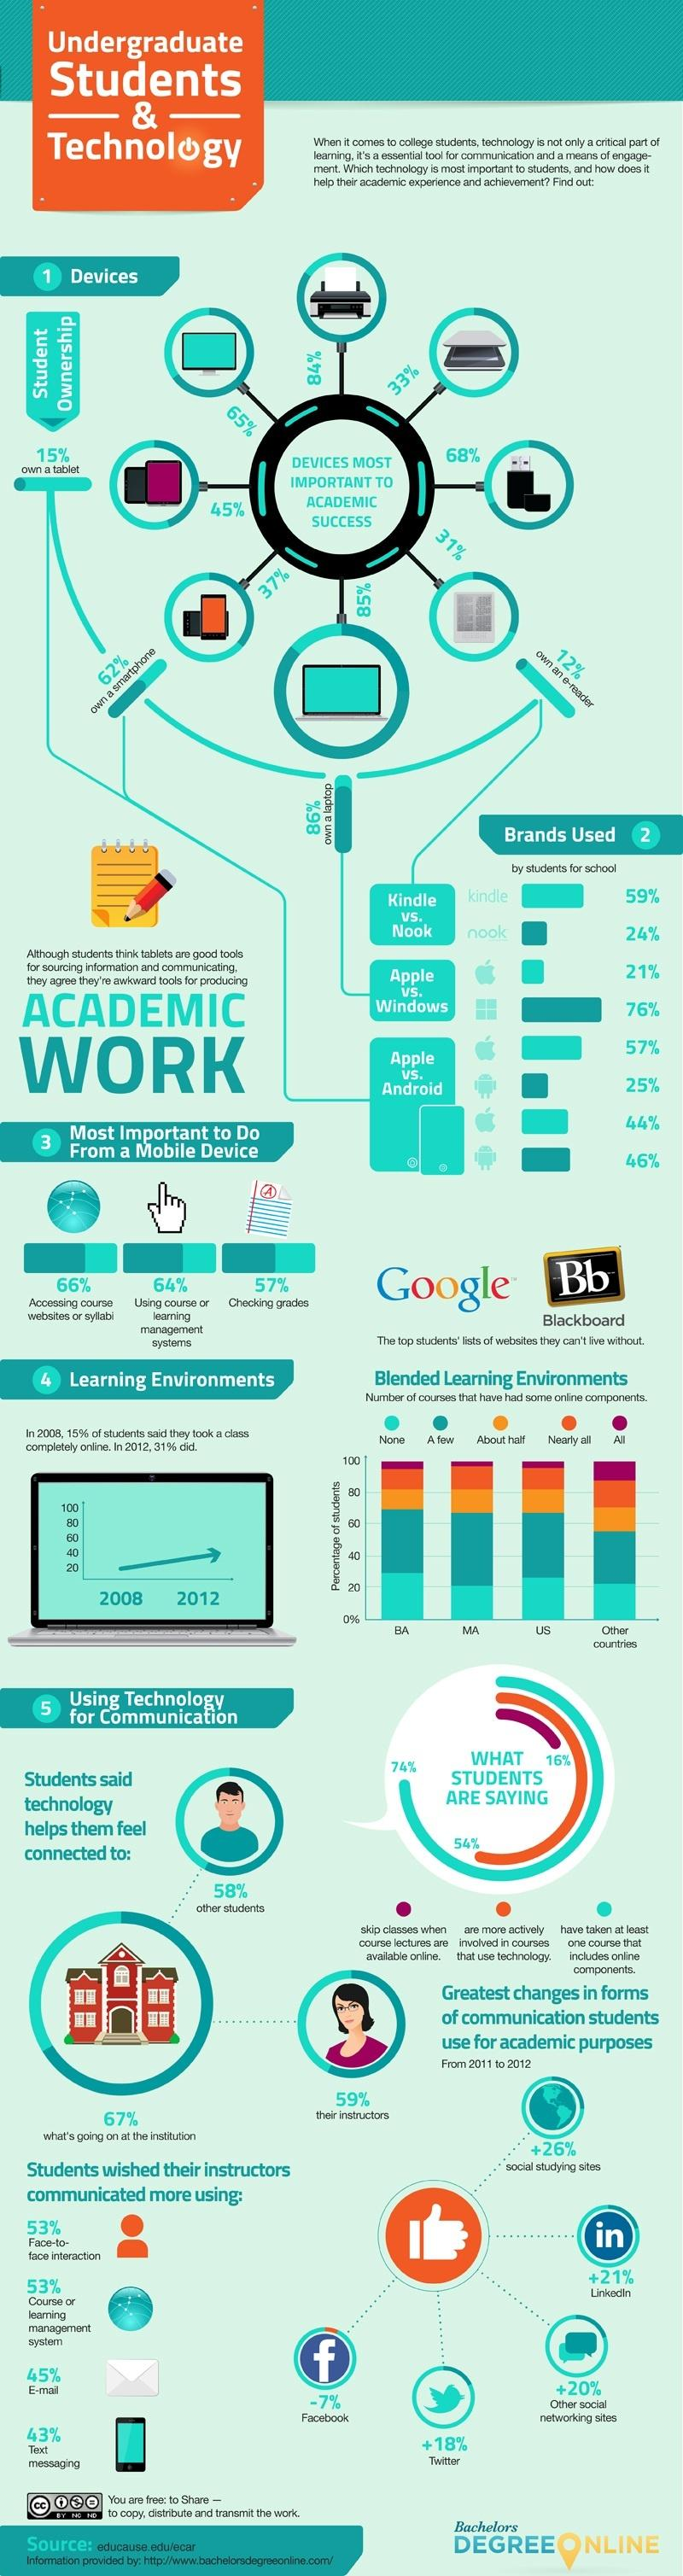 How Undergraduate Students Use Technology Infographic